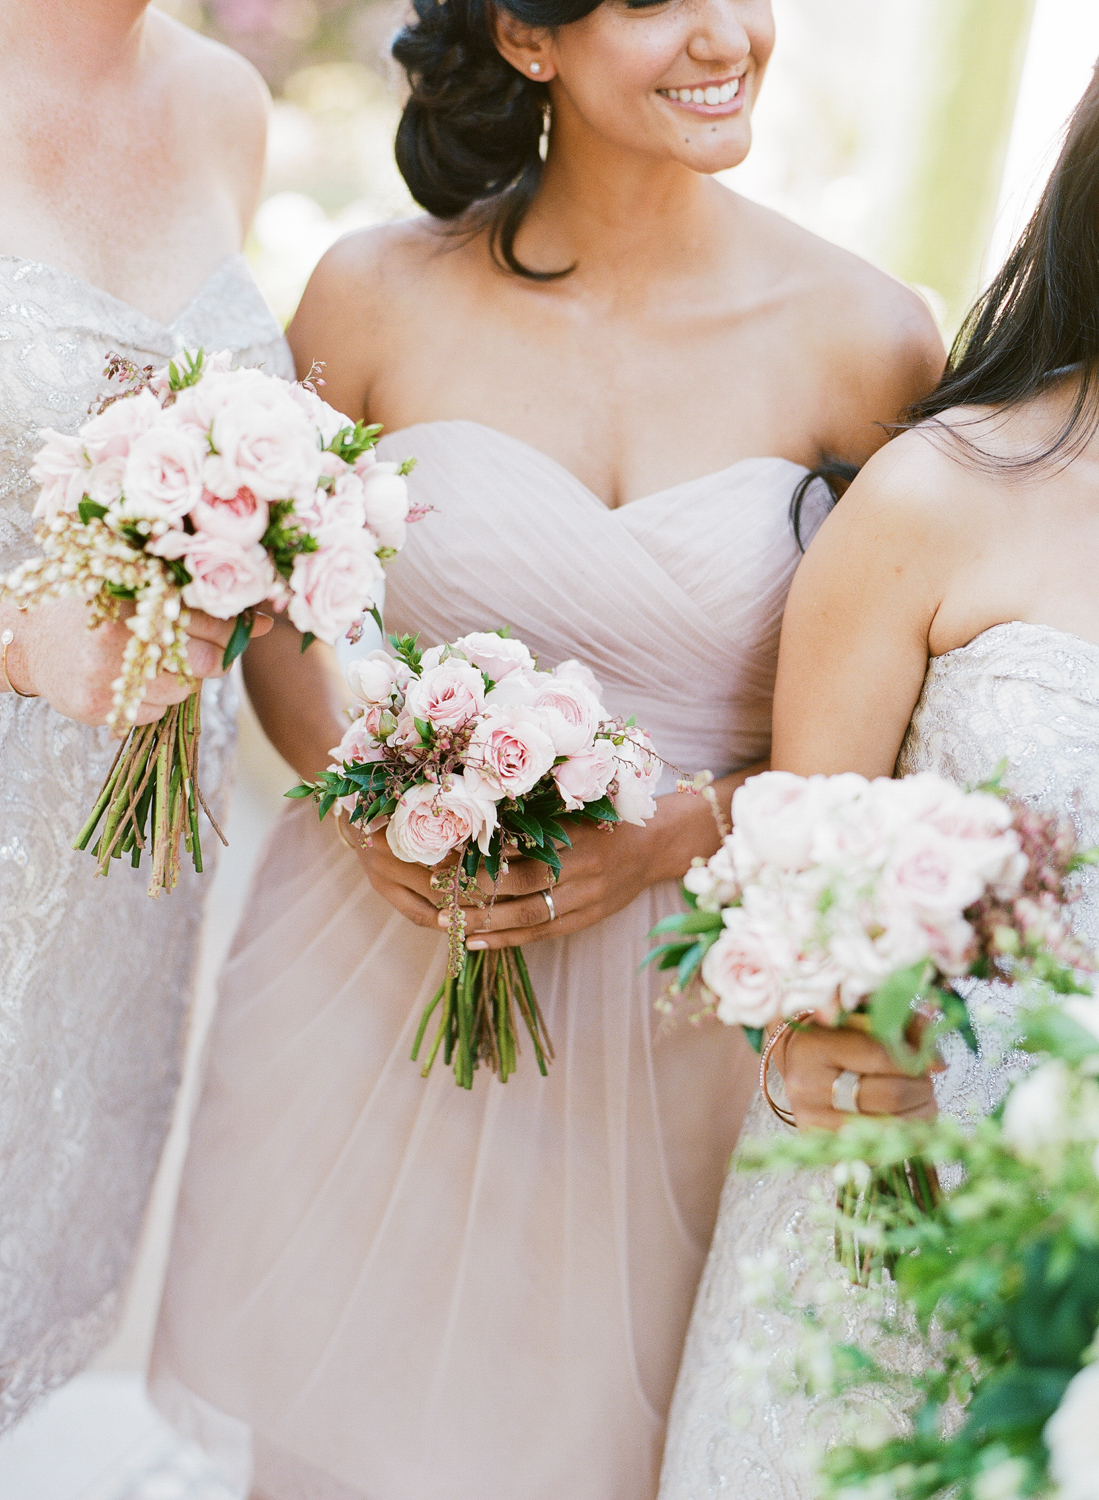 Sweetheart necklines abound with both the bride and her bridesmaids; photo by Sylvie Gil